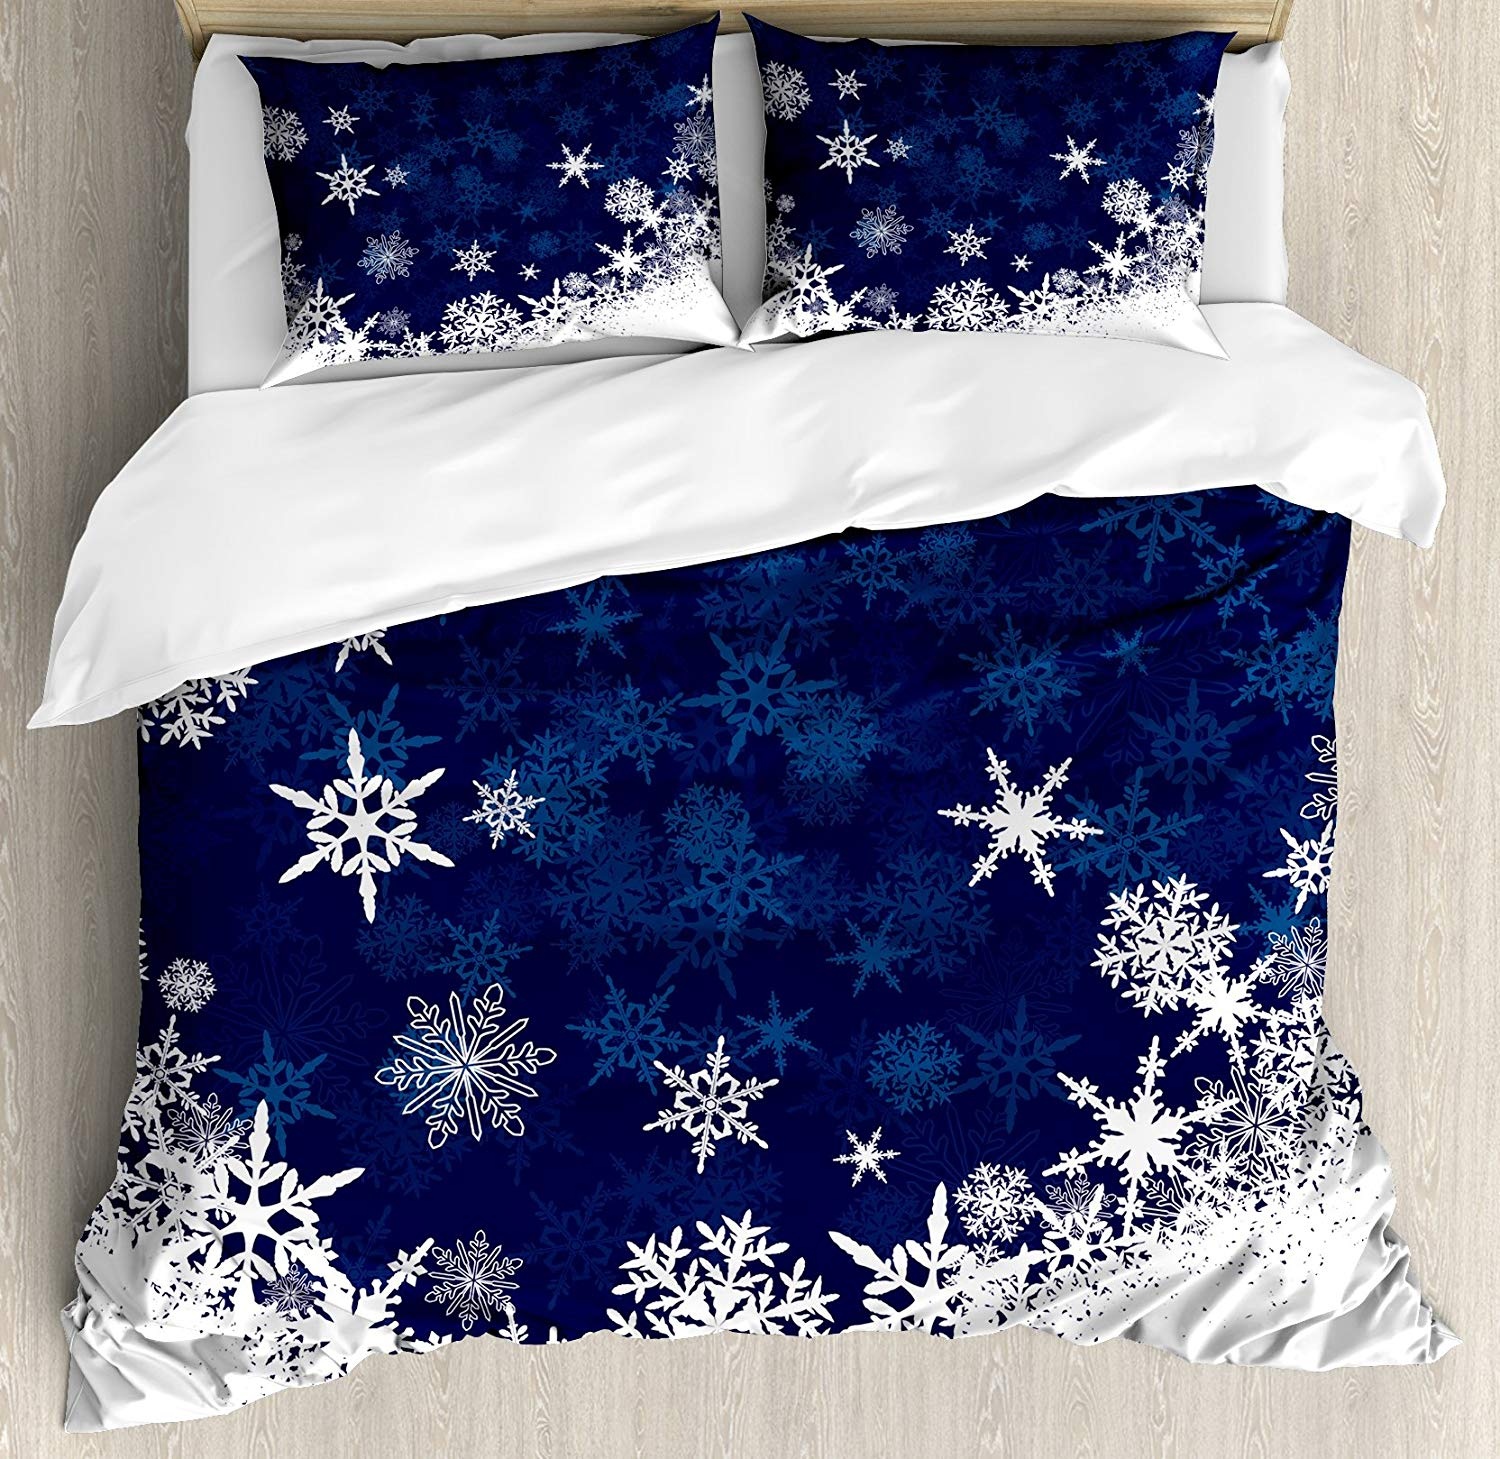 Lunarable Christmas Duvet Cover Set - Buy Christmas Duvet Covers